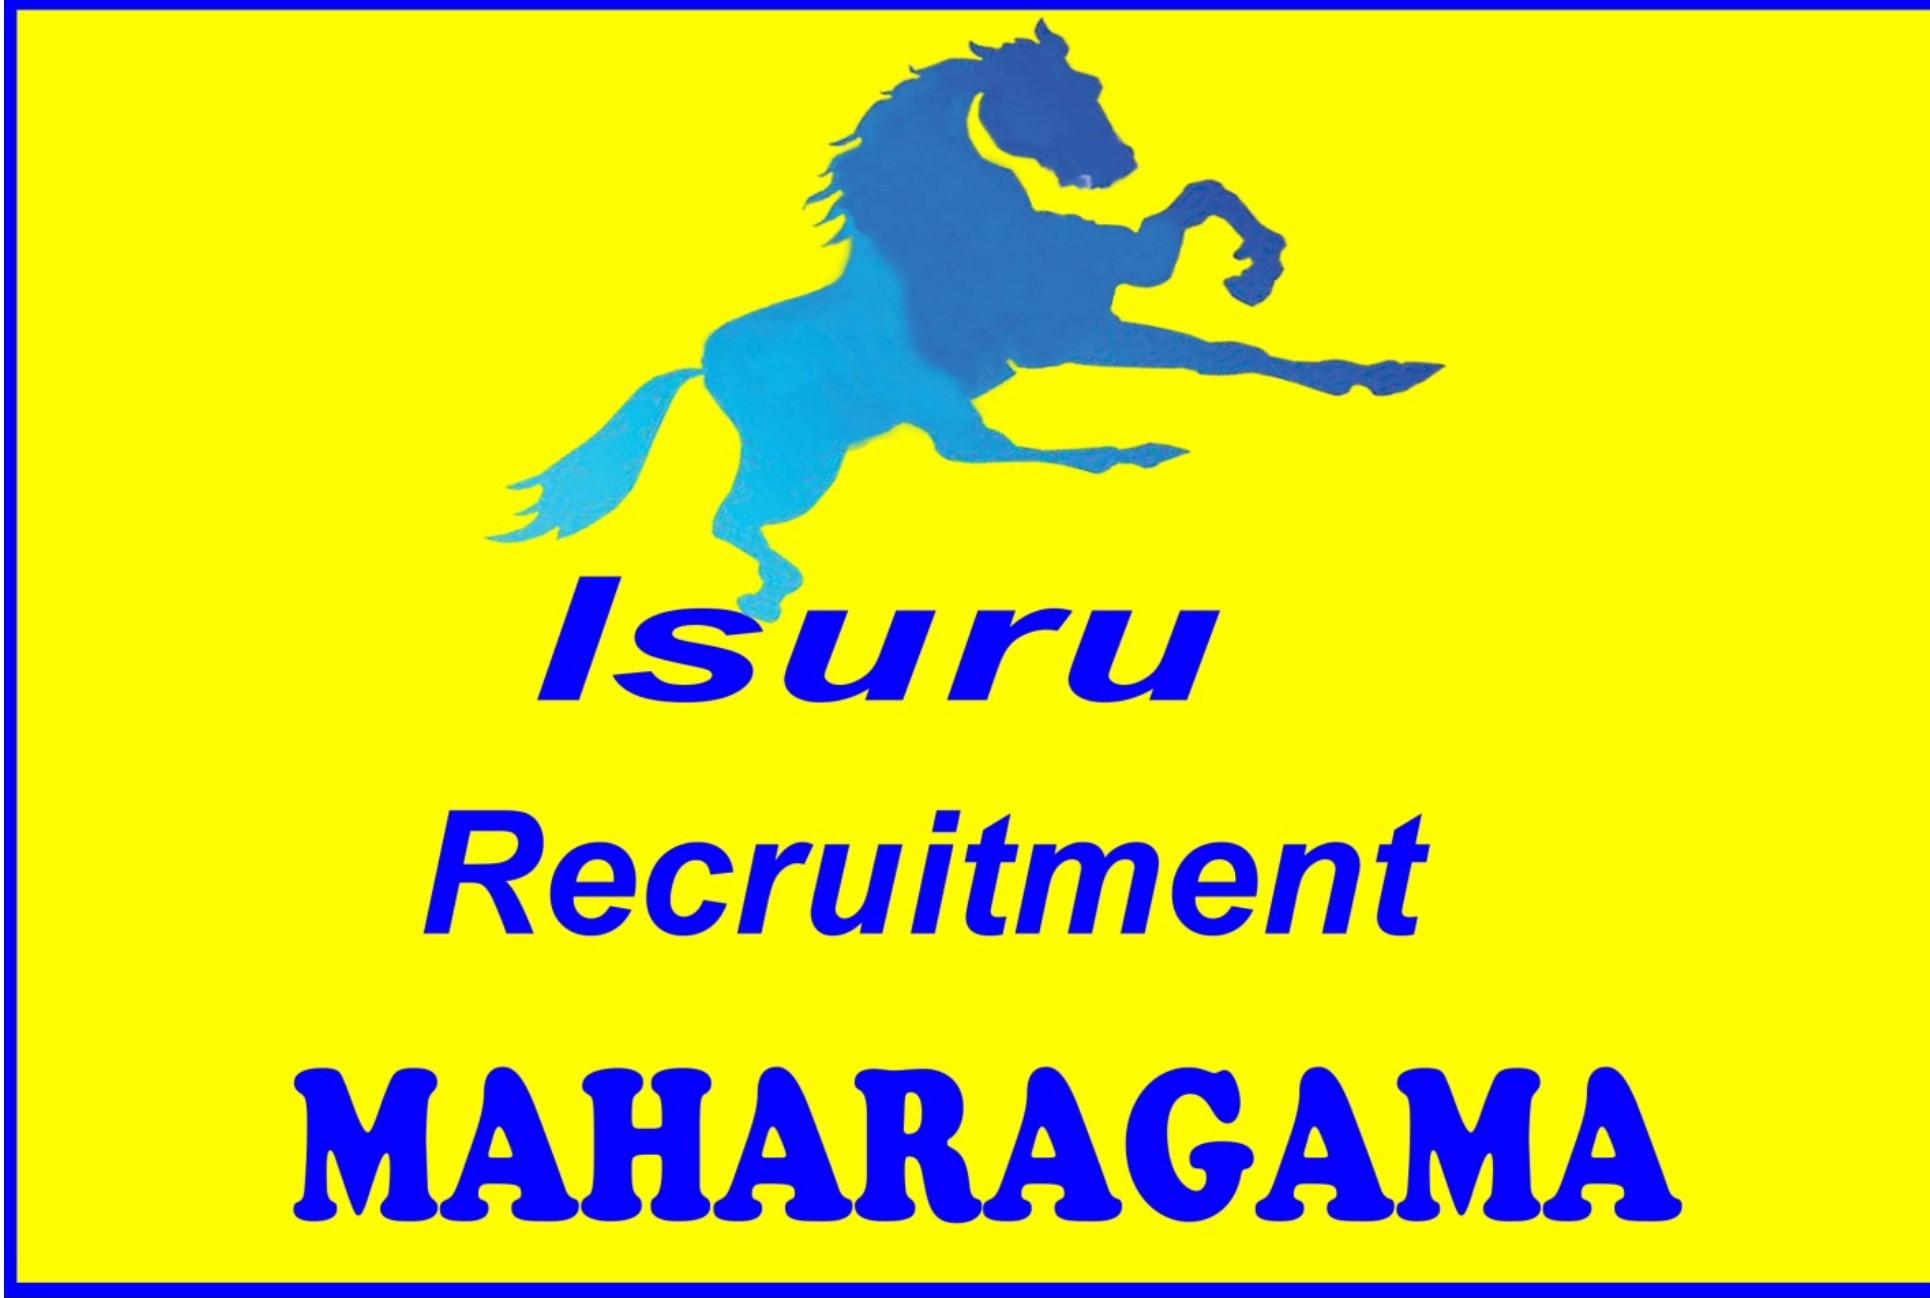 Isuru Recruitment